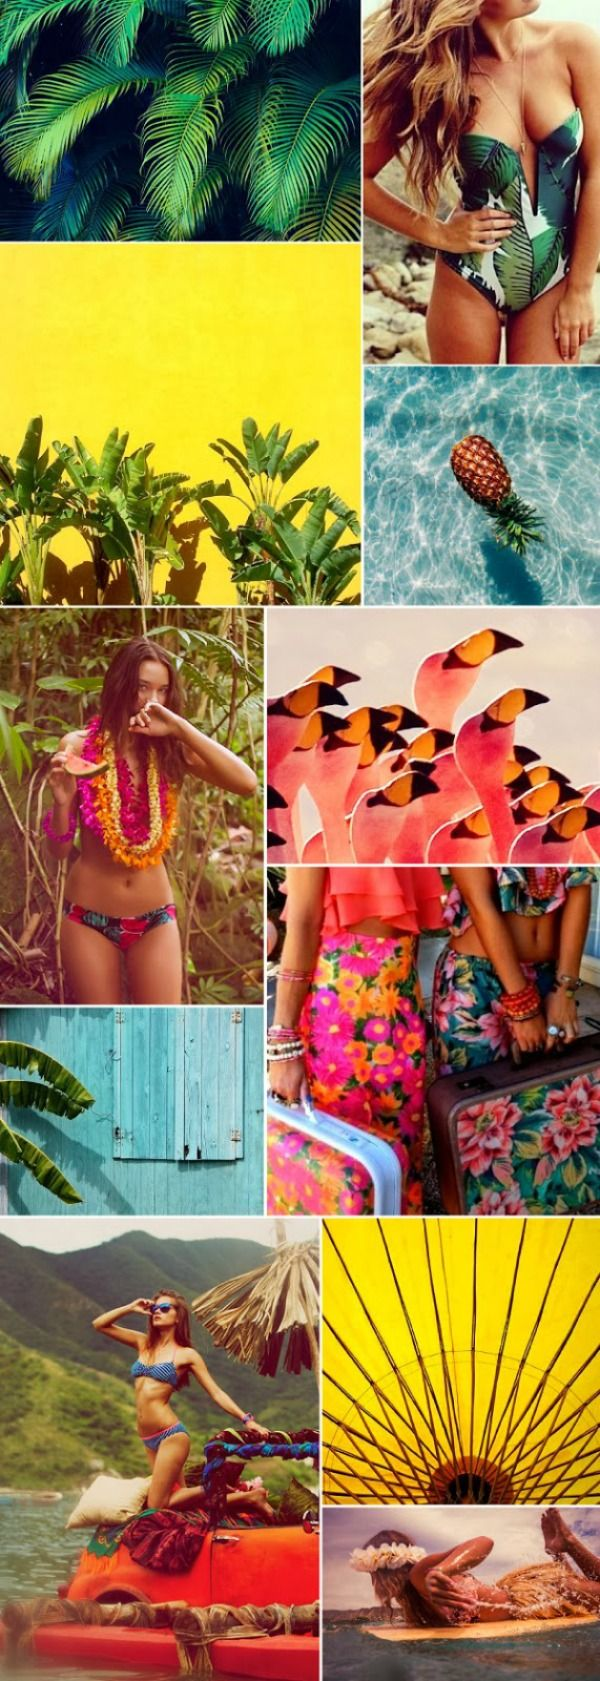 papersocial moodboard tropi-cool